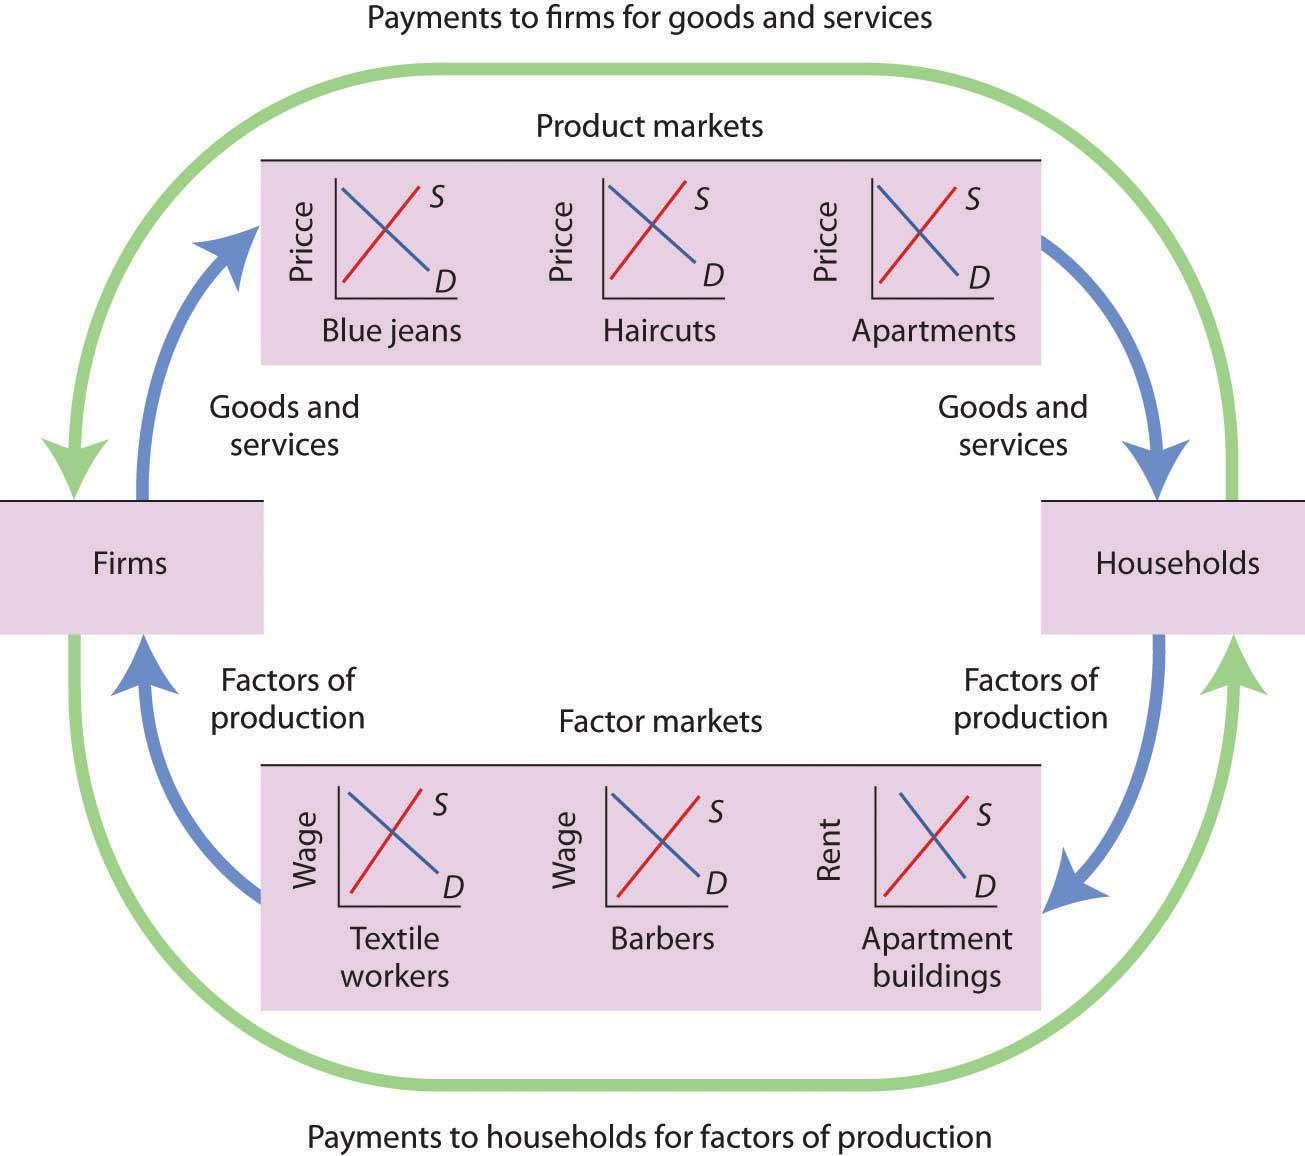 Principles of economics 20 flatworld this simplified circular flow model shows flows of spending between households and firms through product and factor markets the inner arrows show goods and ccuart Image collections